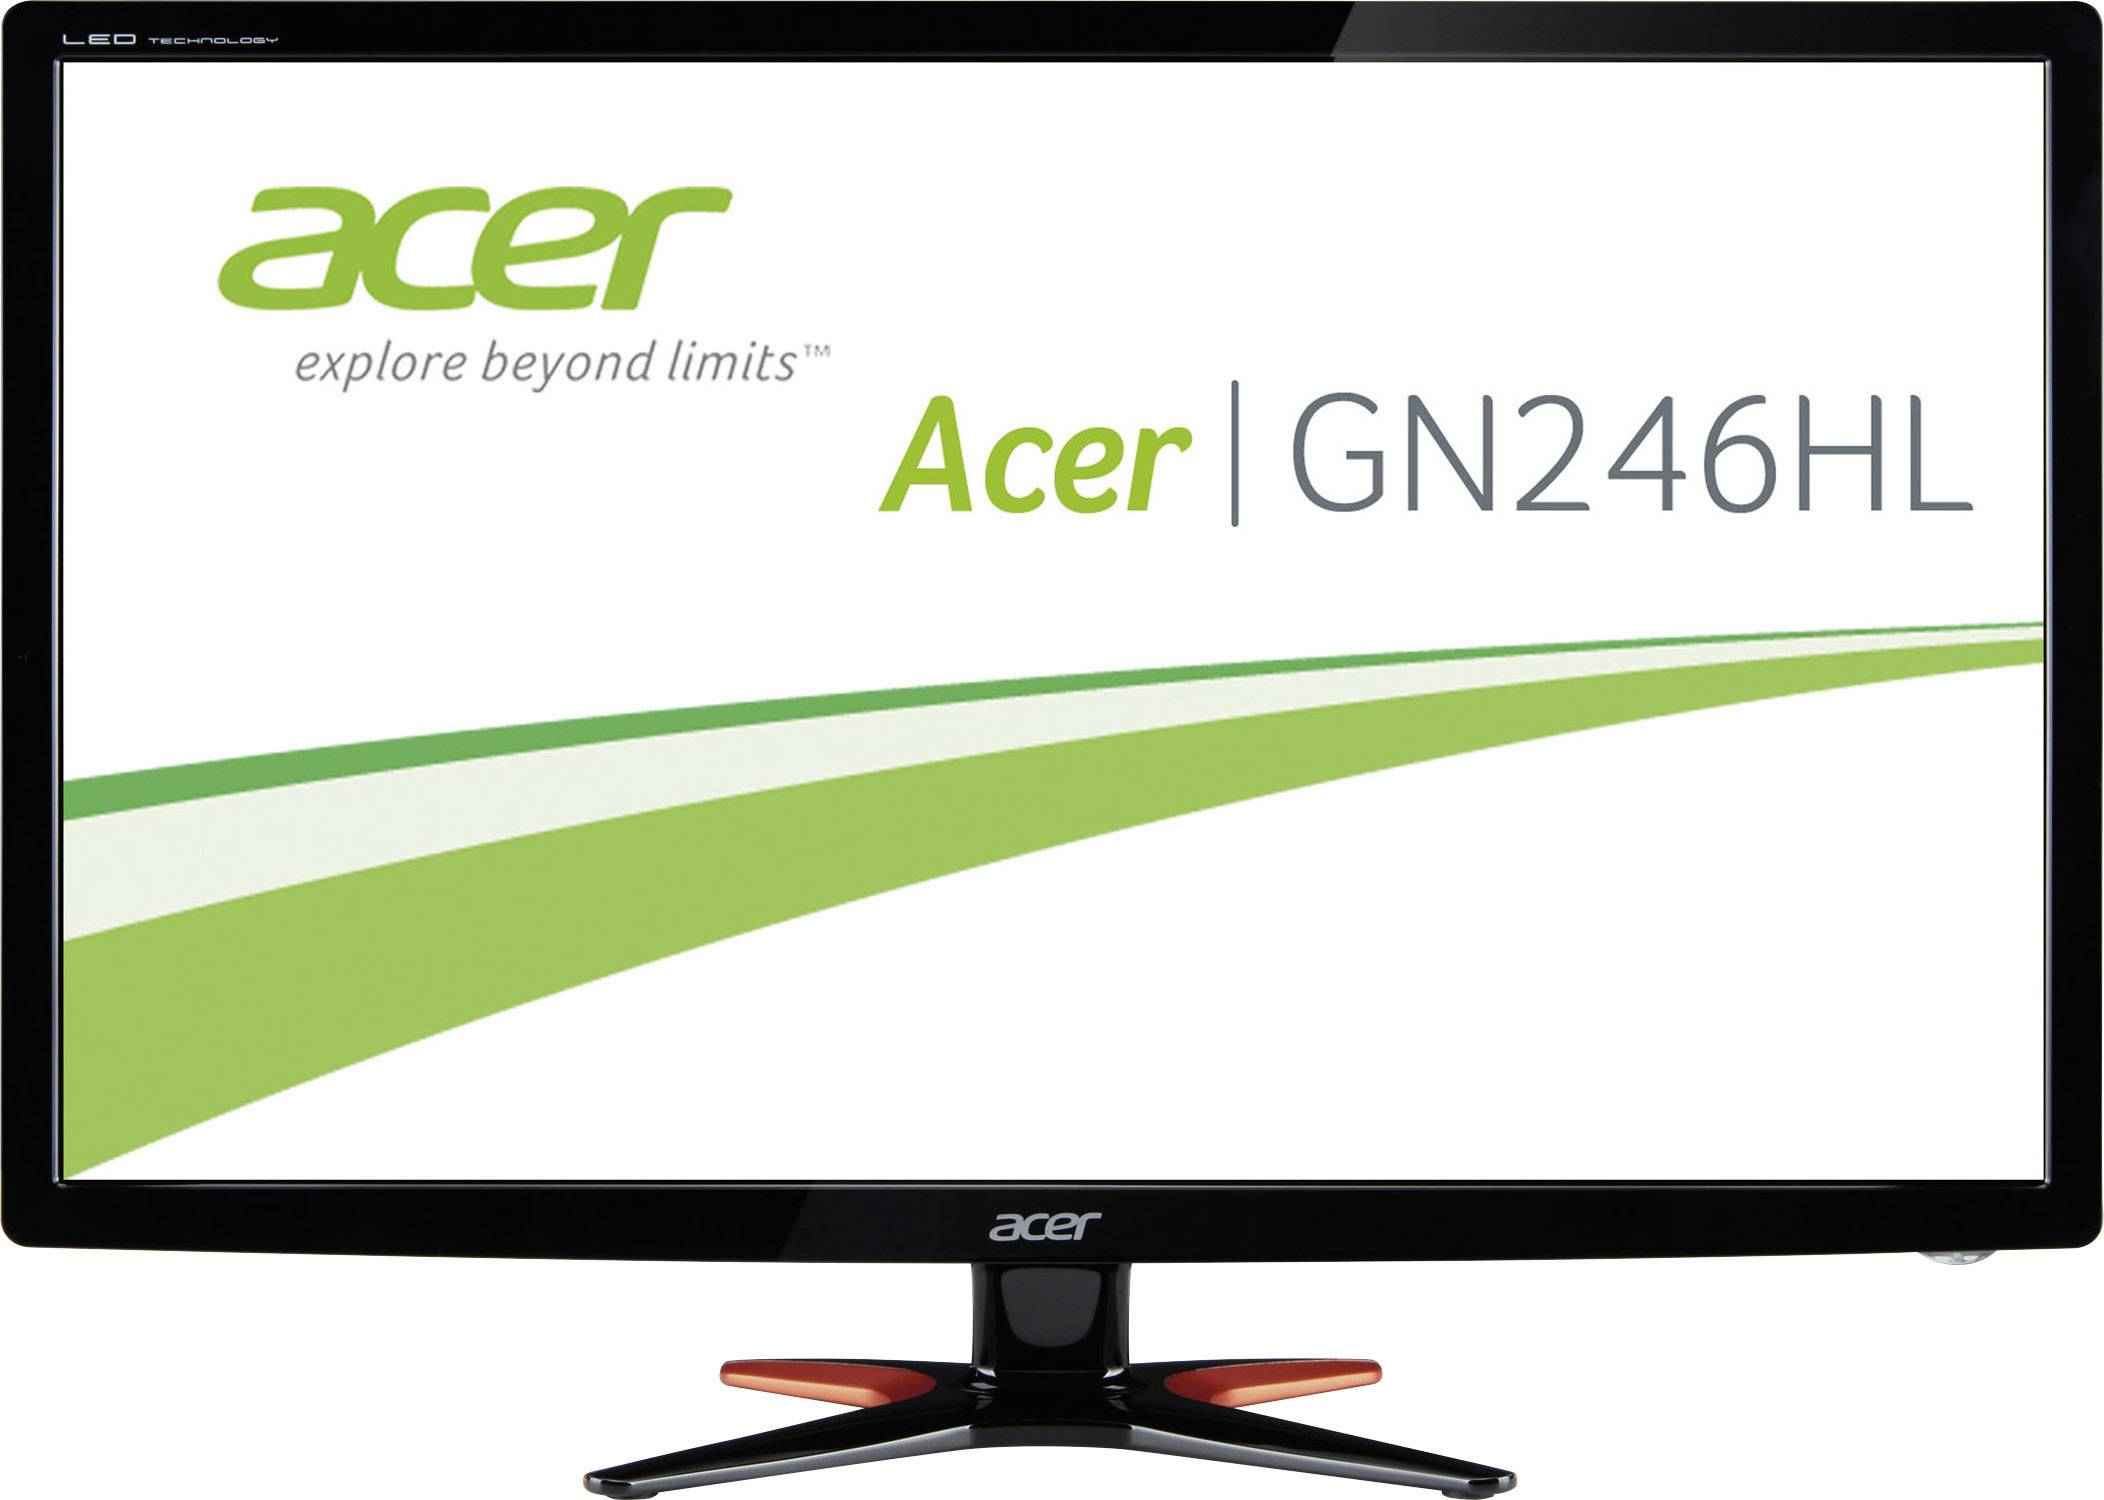 Acer Aspire 5350 NEC USB 3.0 Driver Download